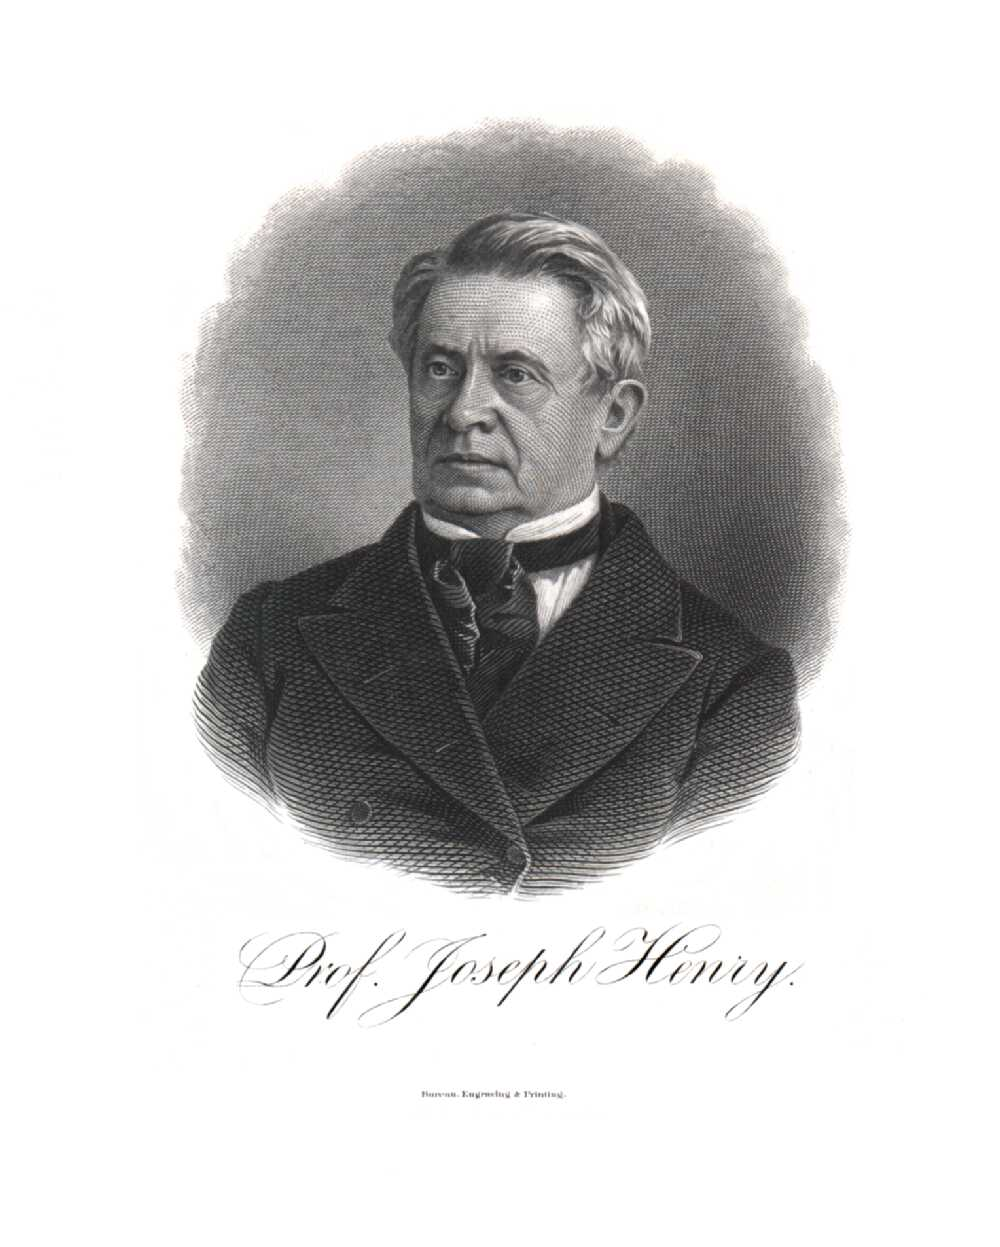 Portrait of Joseph Henry